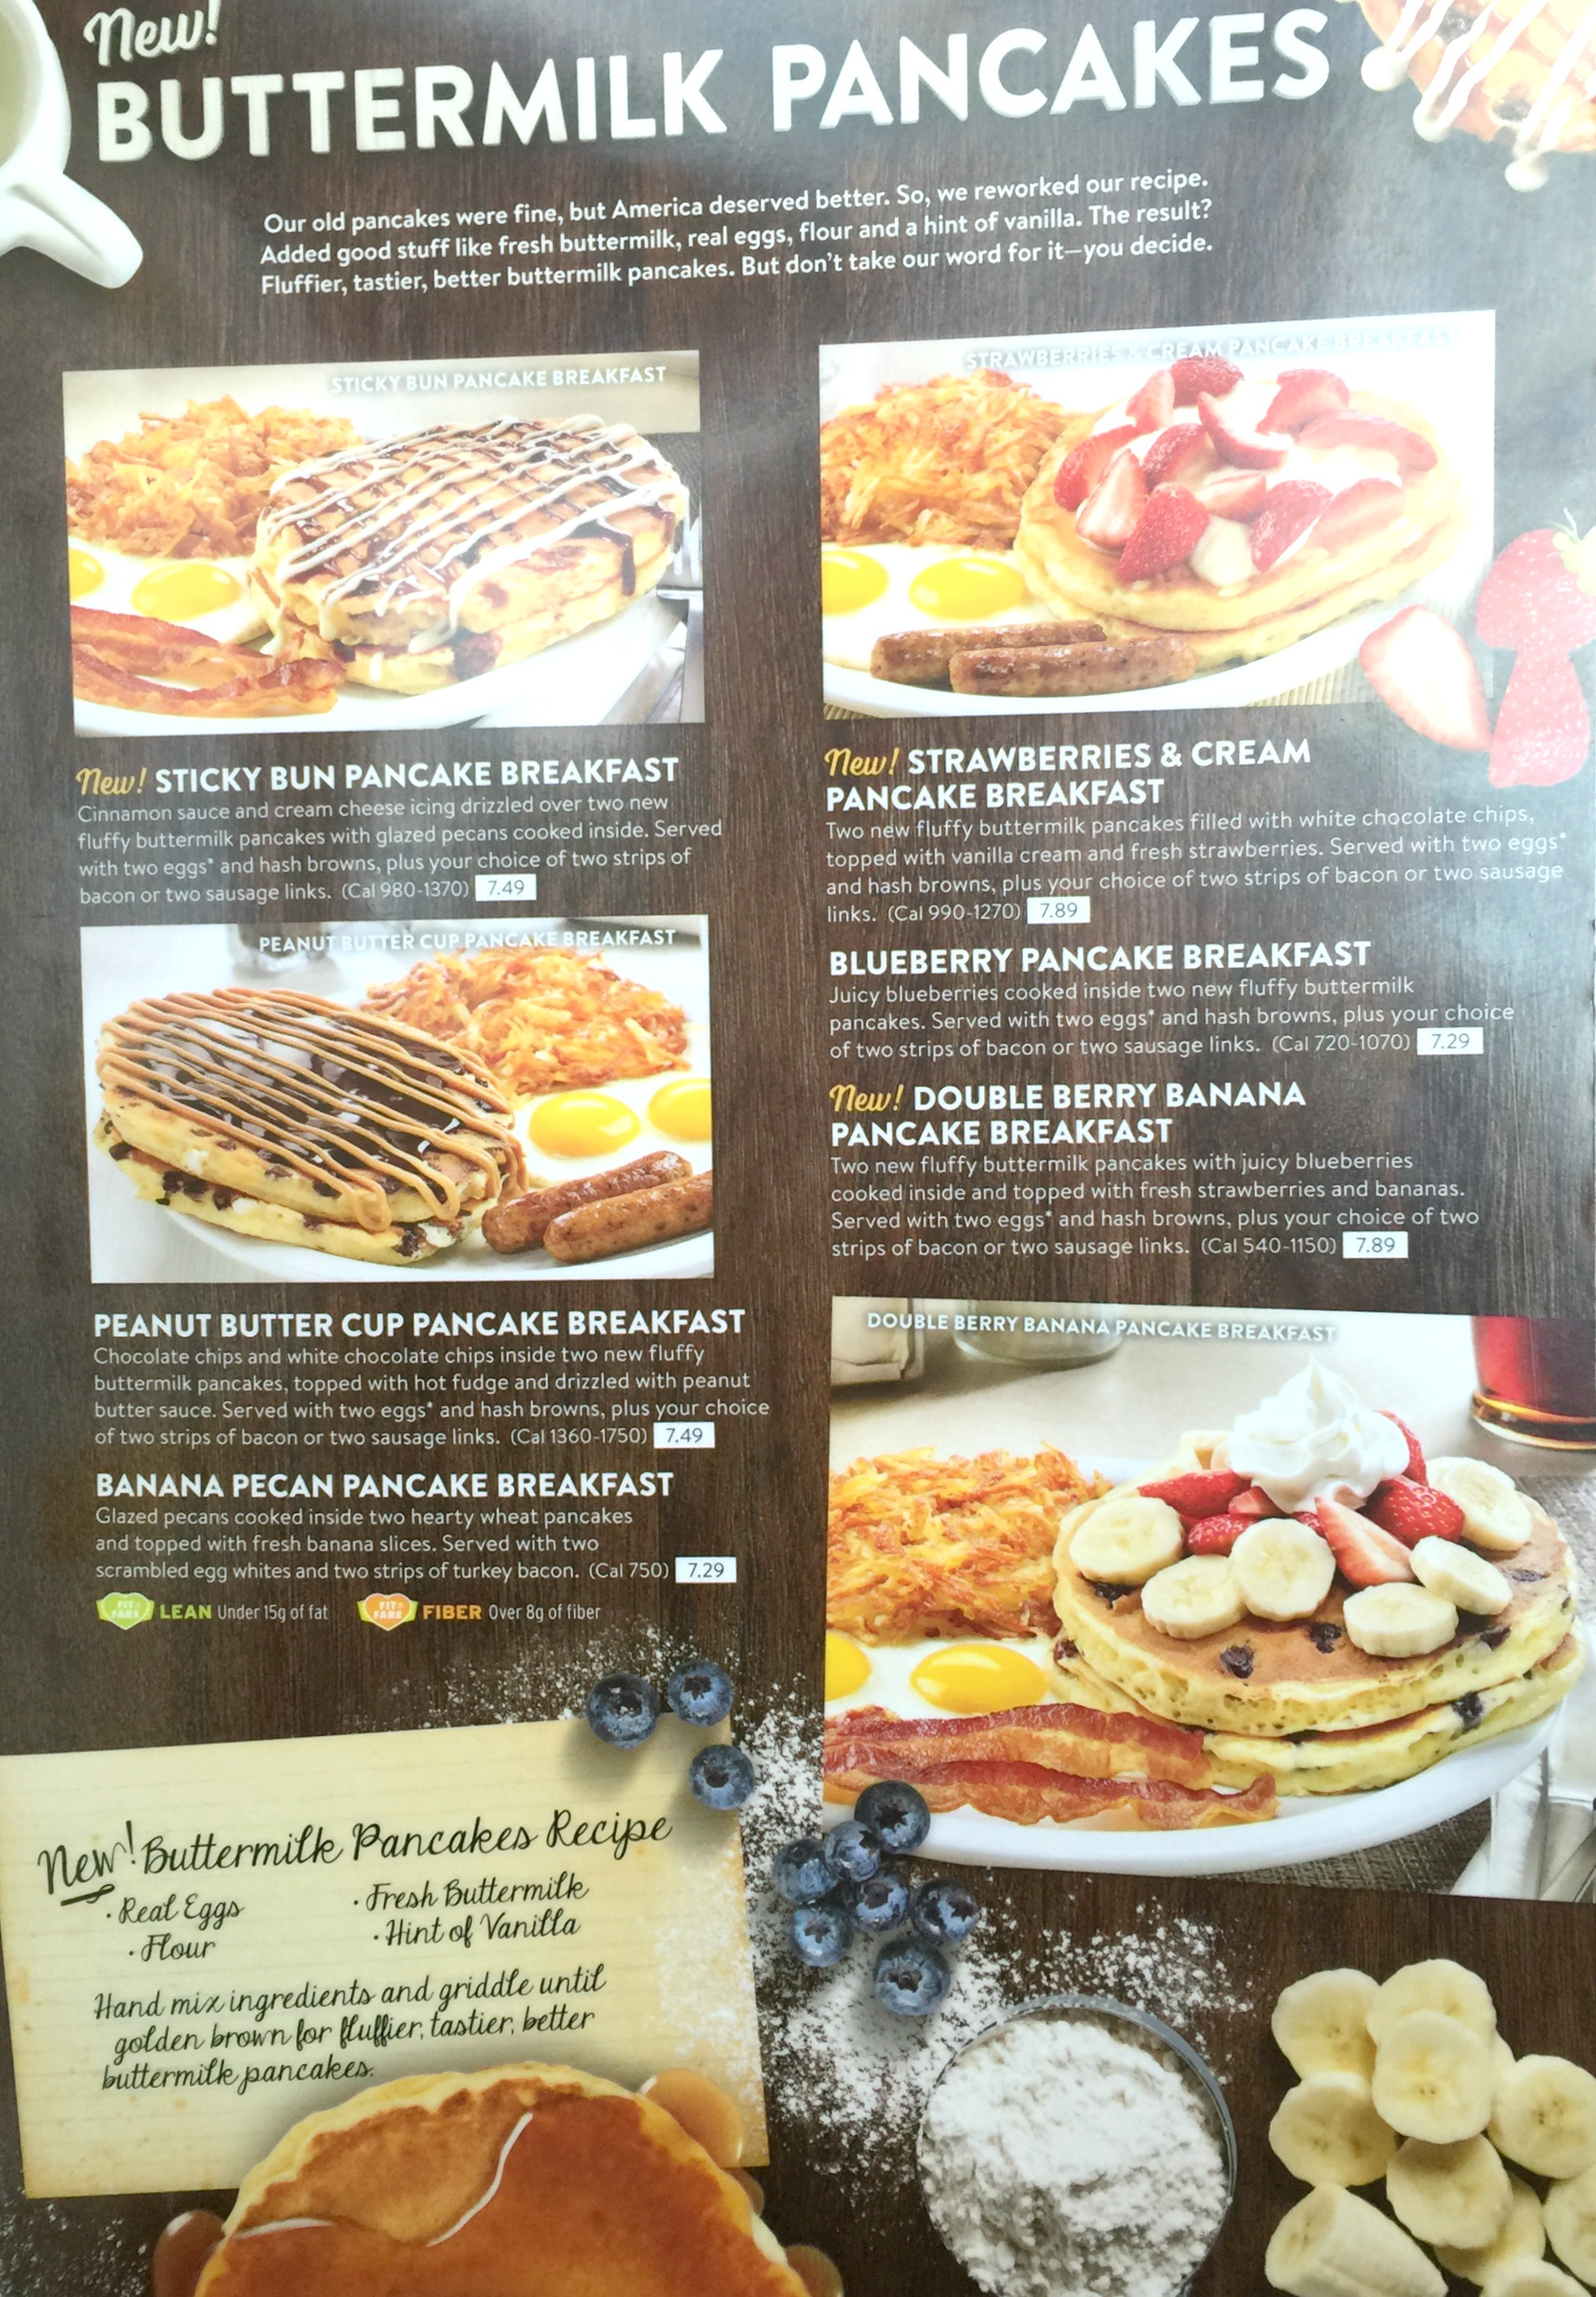 New pancakes at Denny's // Enjoy delicious, fluffy pancakes at Denny's.